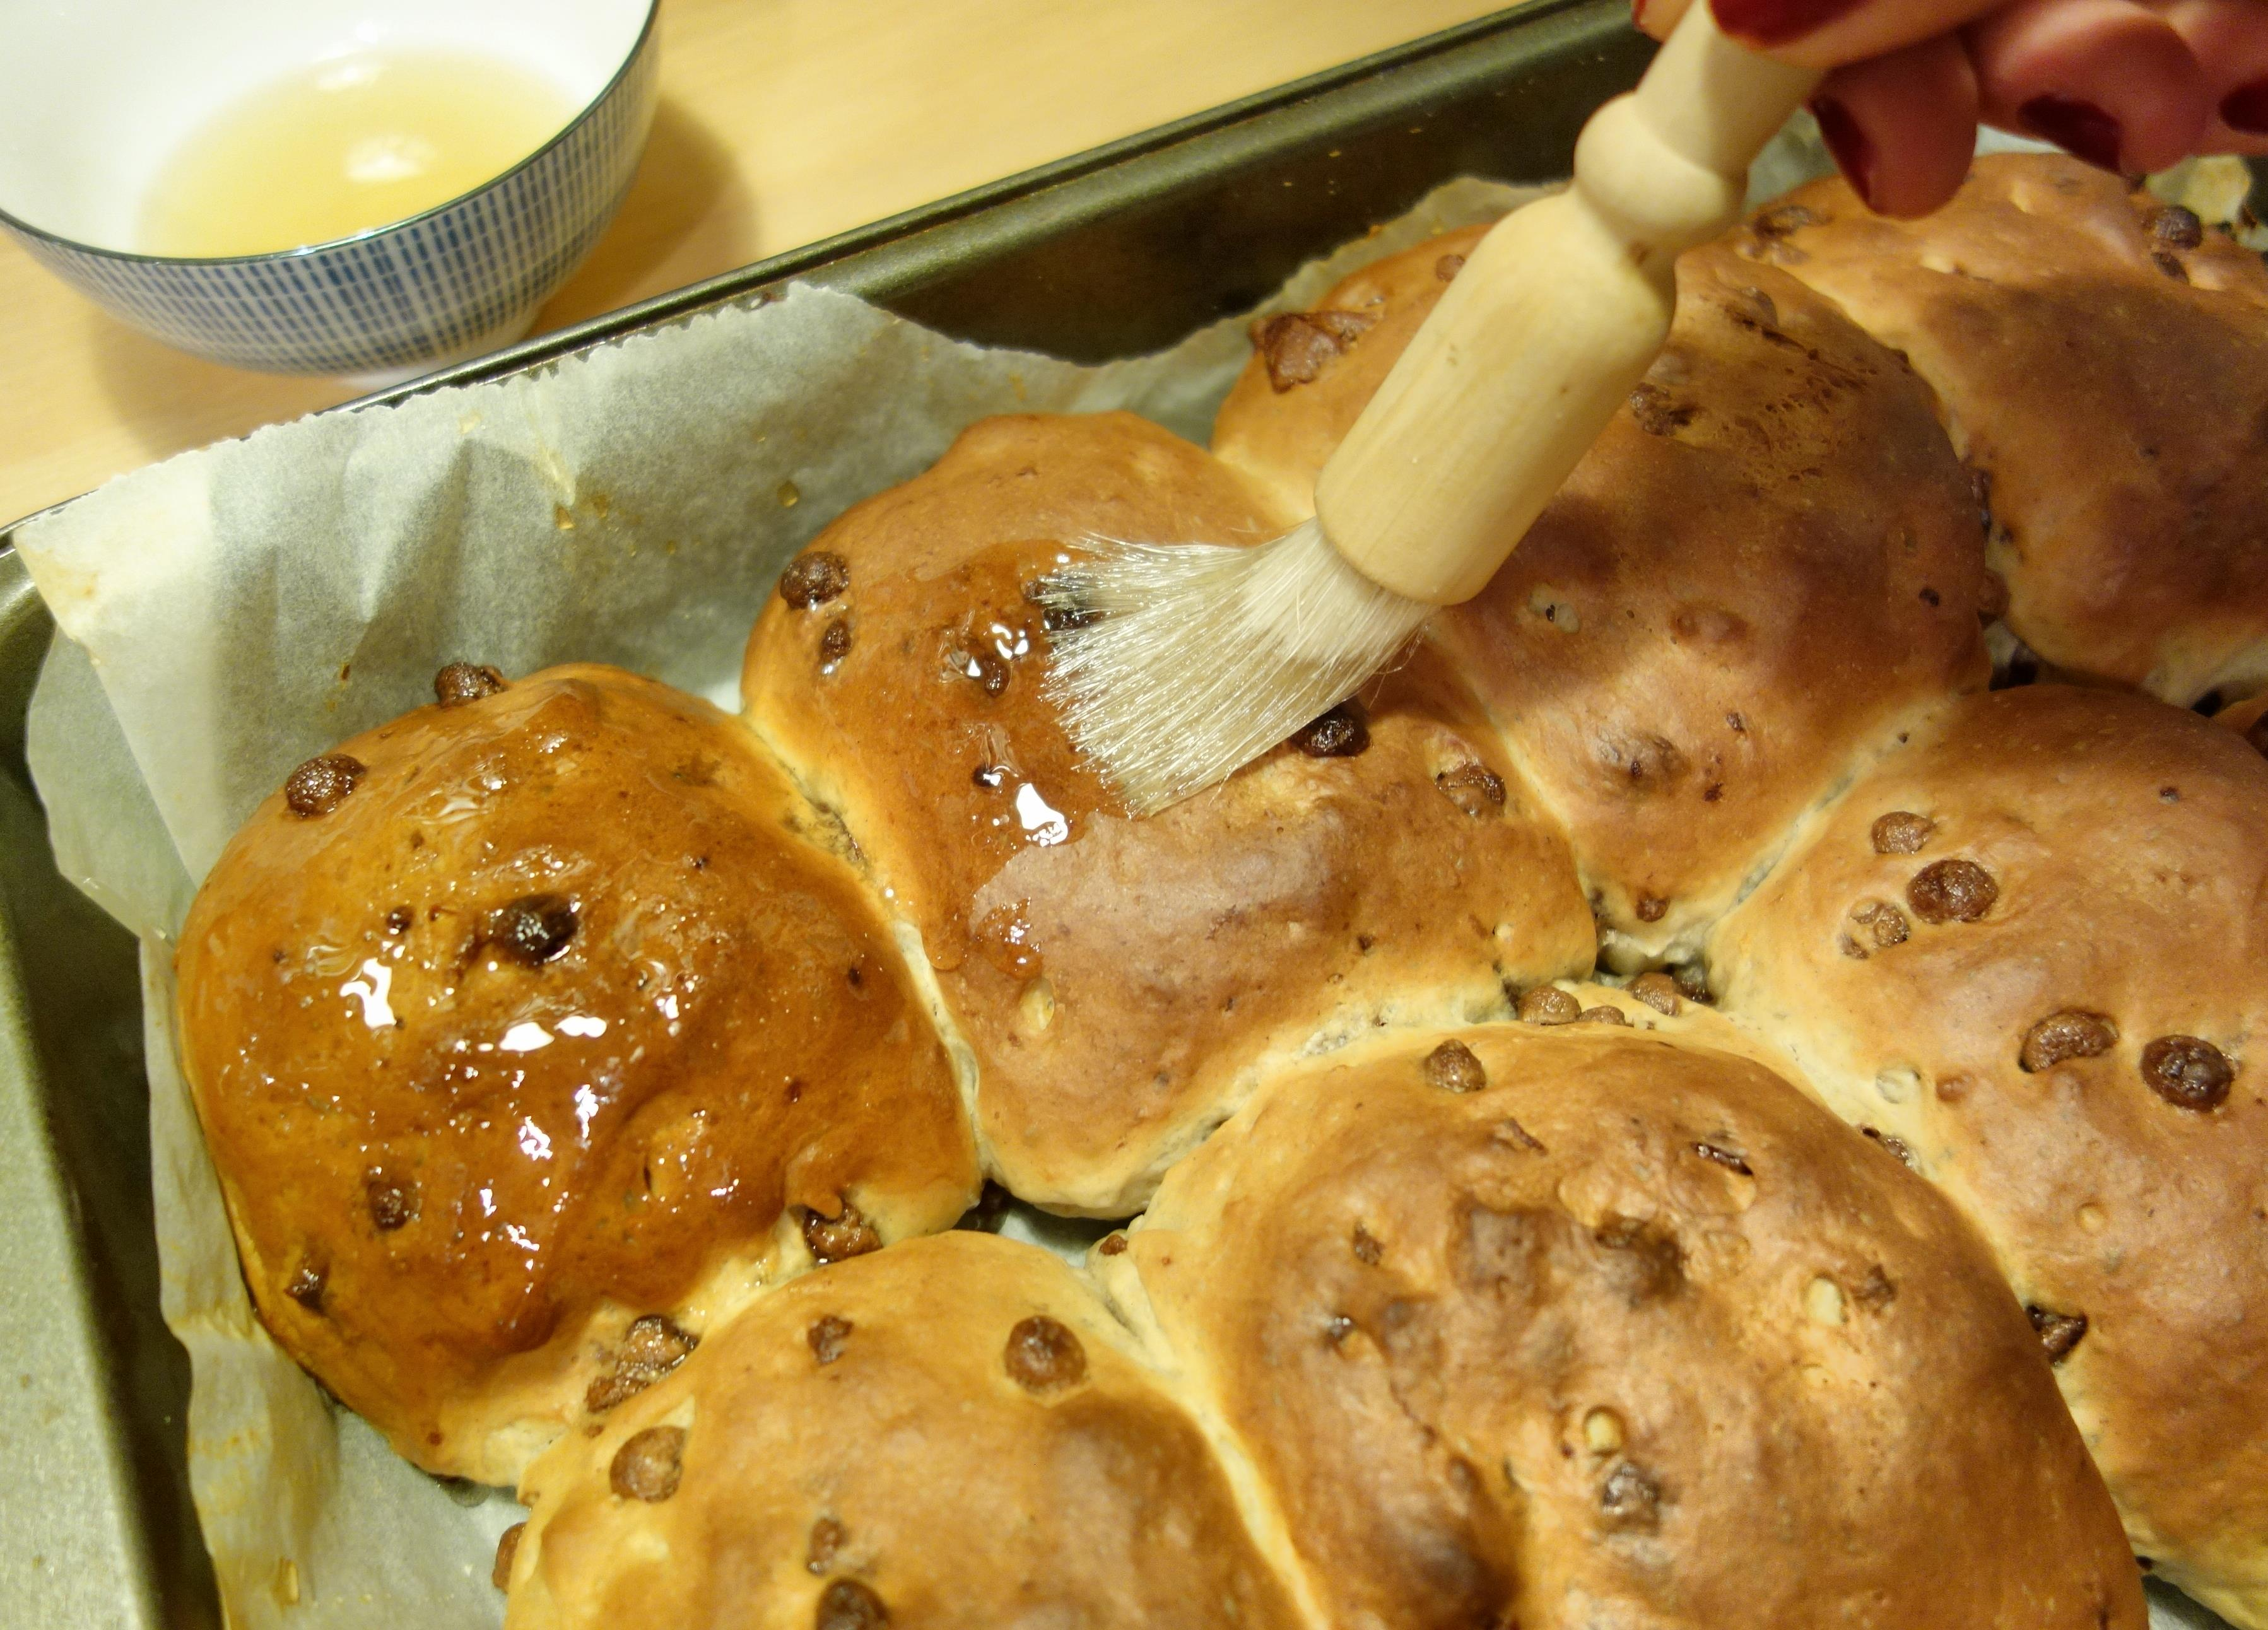 To Make The Crosses Melt The White Chocolate In A Bowl Over A Saucepan Filled With A Couple Of Inches Of Barely Simmering Water Making Sure The Base Of